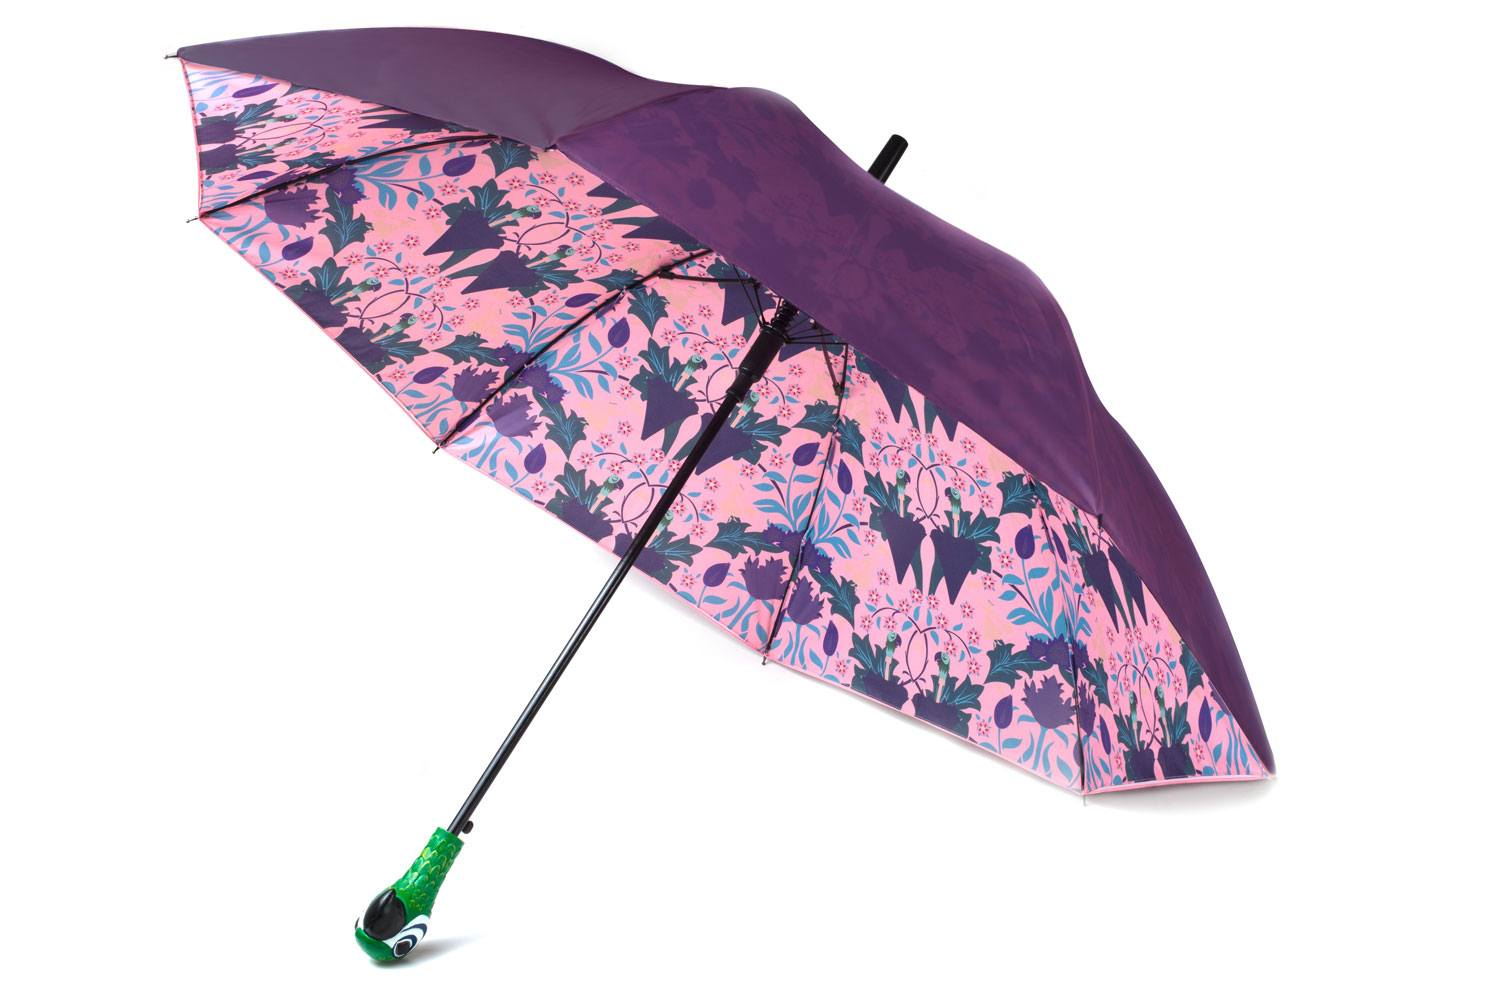 Disney parapluie AOP (Mary Poppins)